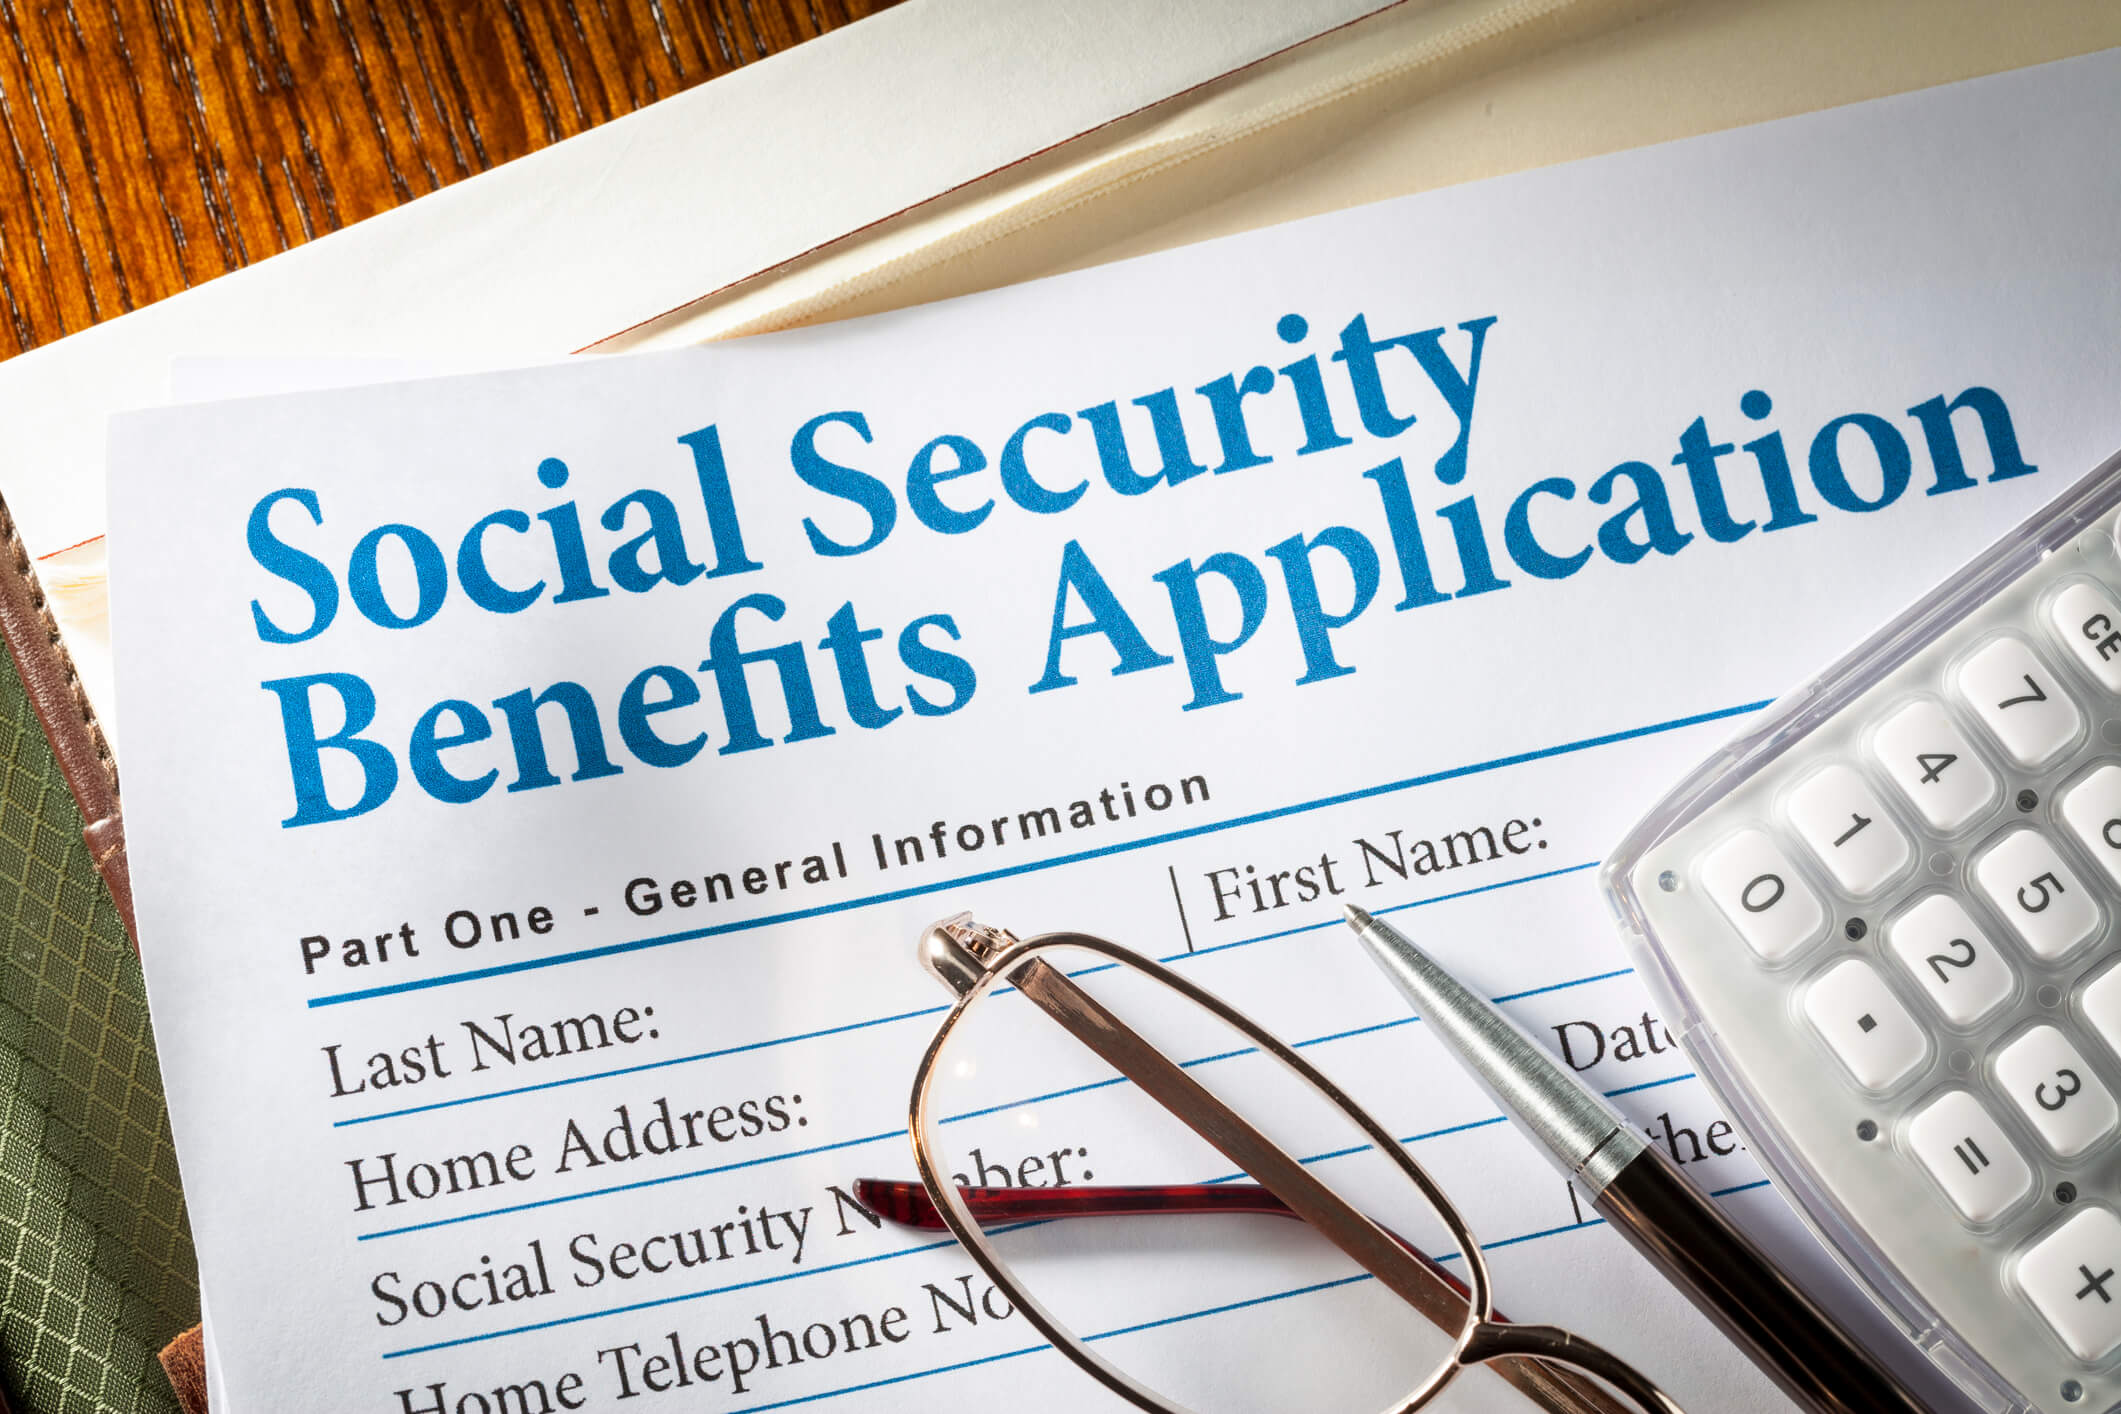 Roeschke Law, LLC discusses how to apply for social security disability benefits.